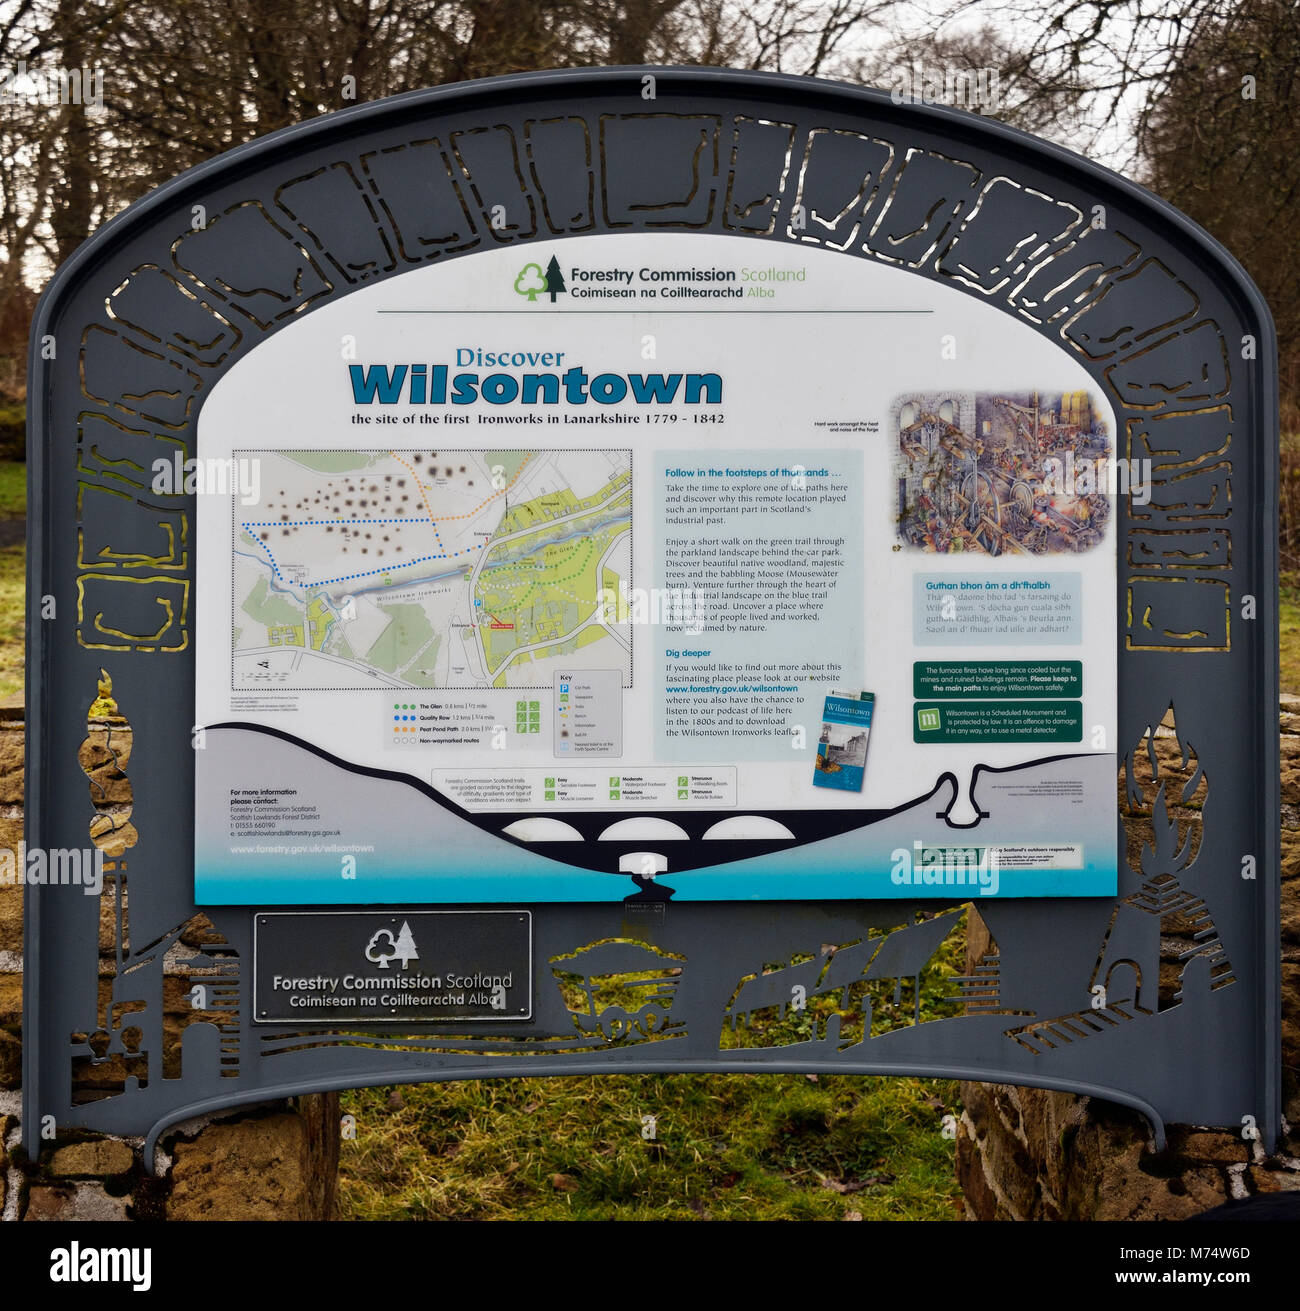 Descriptive signboard. 'Discover Wilsontown the site of the first Ironworks in Lanarkshire 1779 - 1842'. - Stock Image